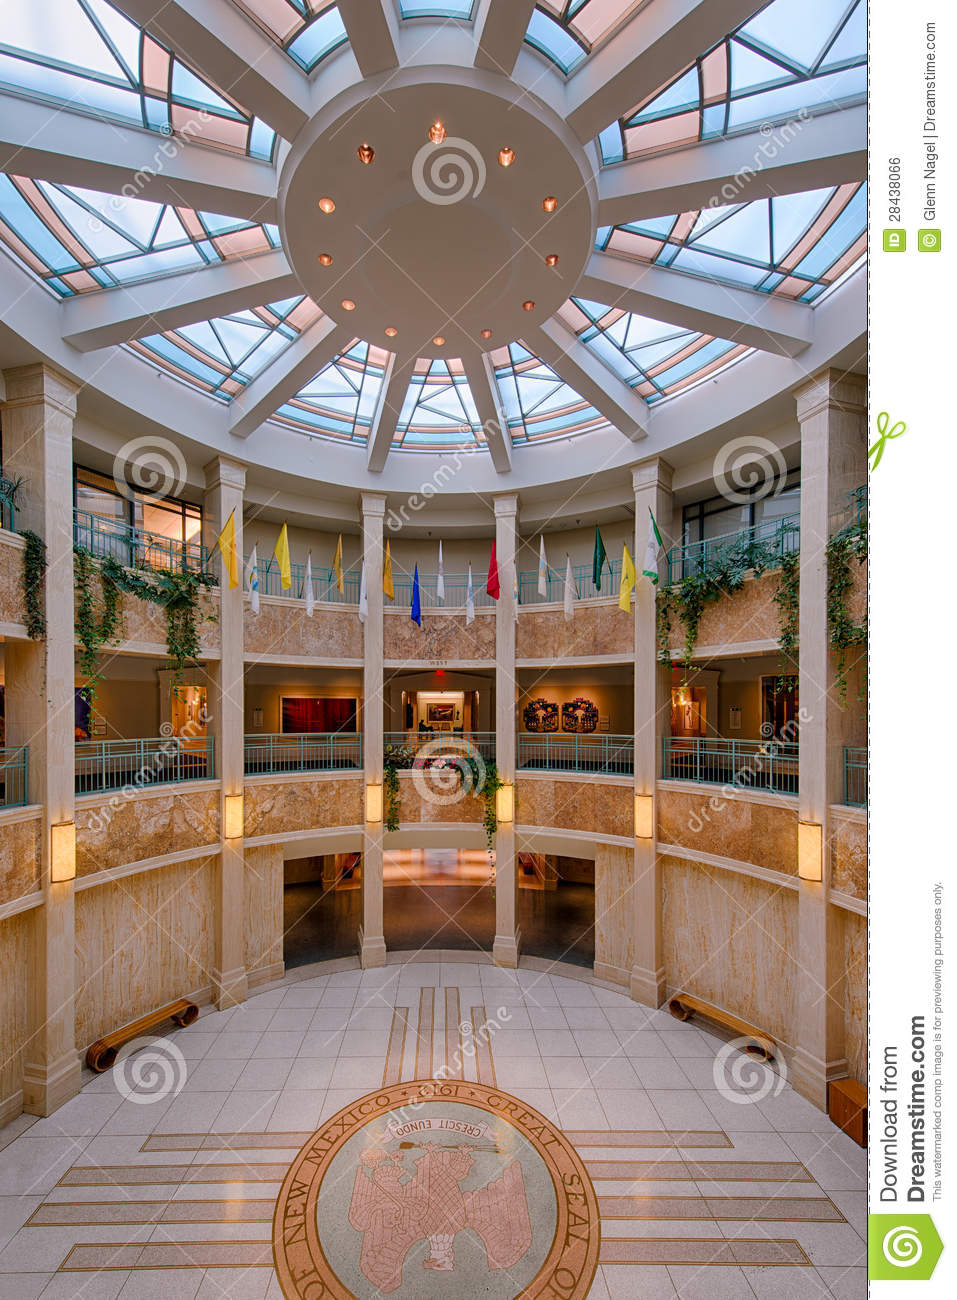 New Mexico State Capitol Building Royalty Free Stock Image